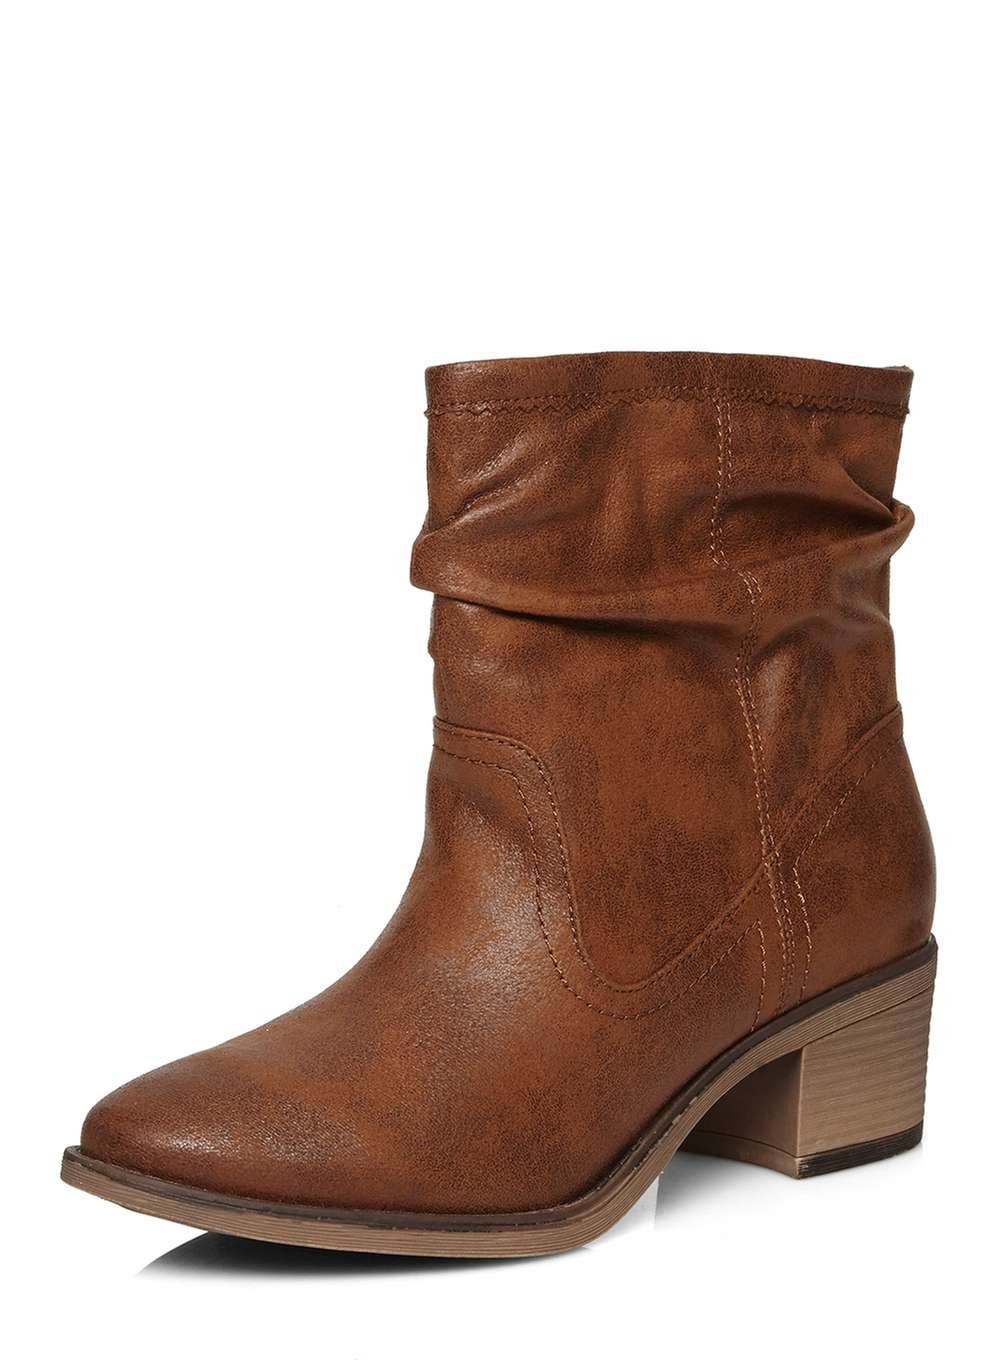 dorothy perkins slouch boots in brown lyst